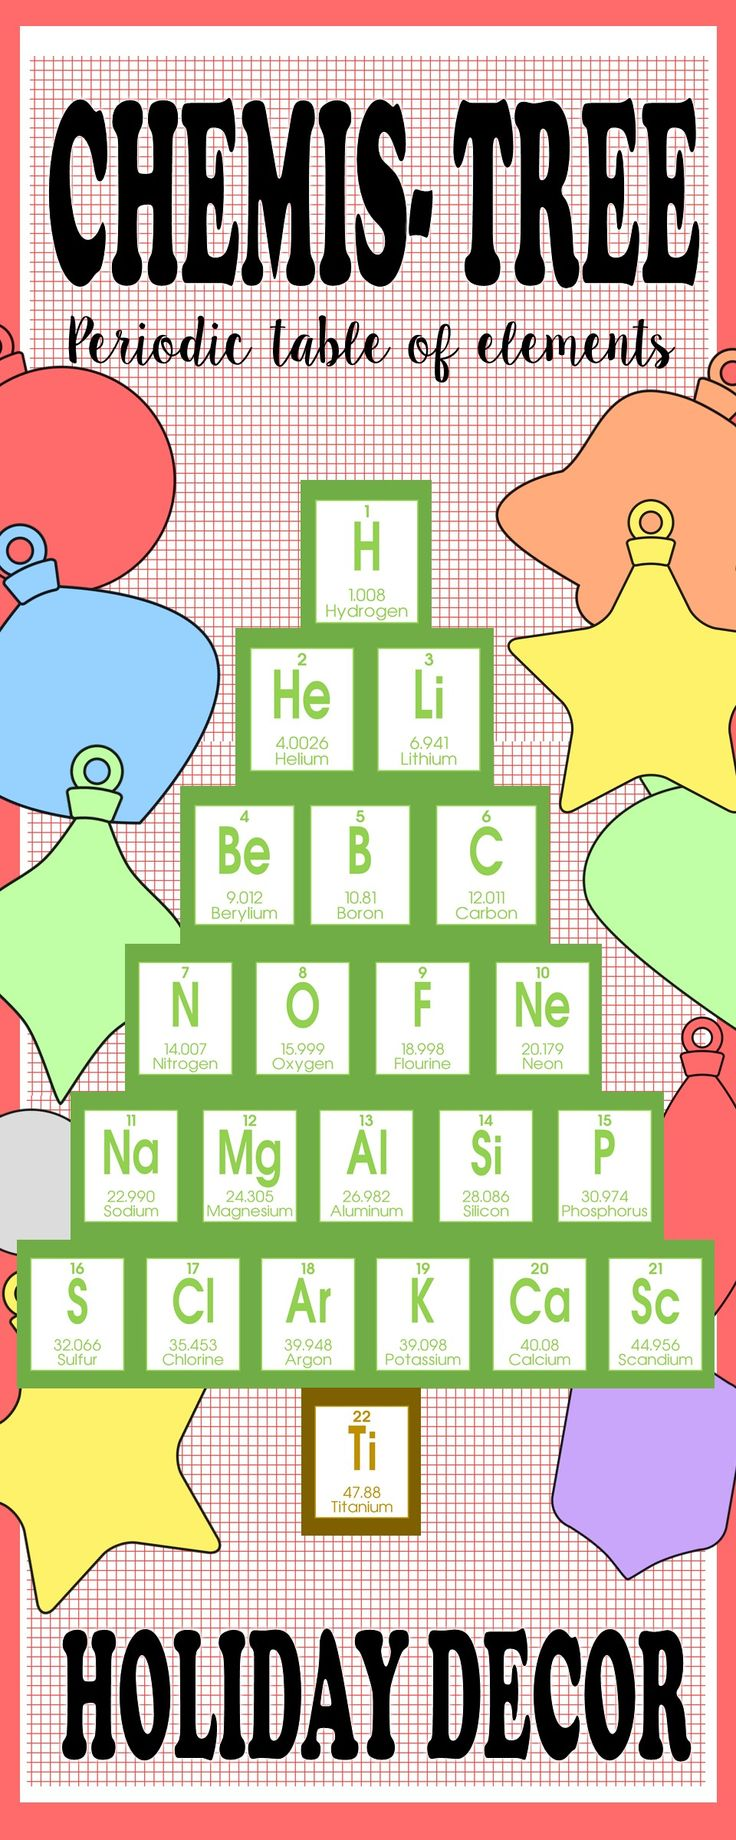 Best 25 periodic elements ideas on pinterest periodic table christmas chemis tree periodic table of elements holiday decor gamestrikefo Choice Image